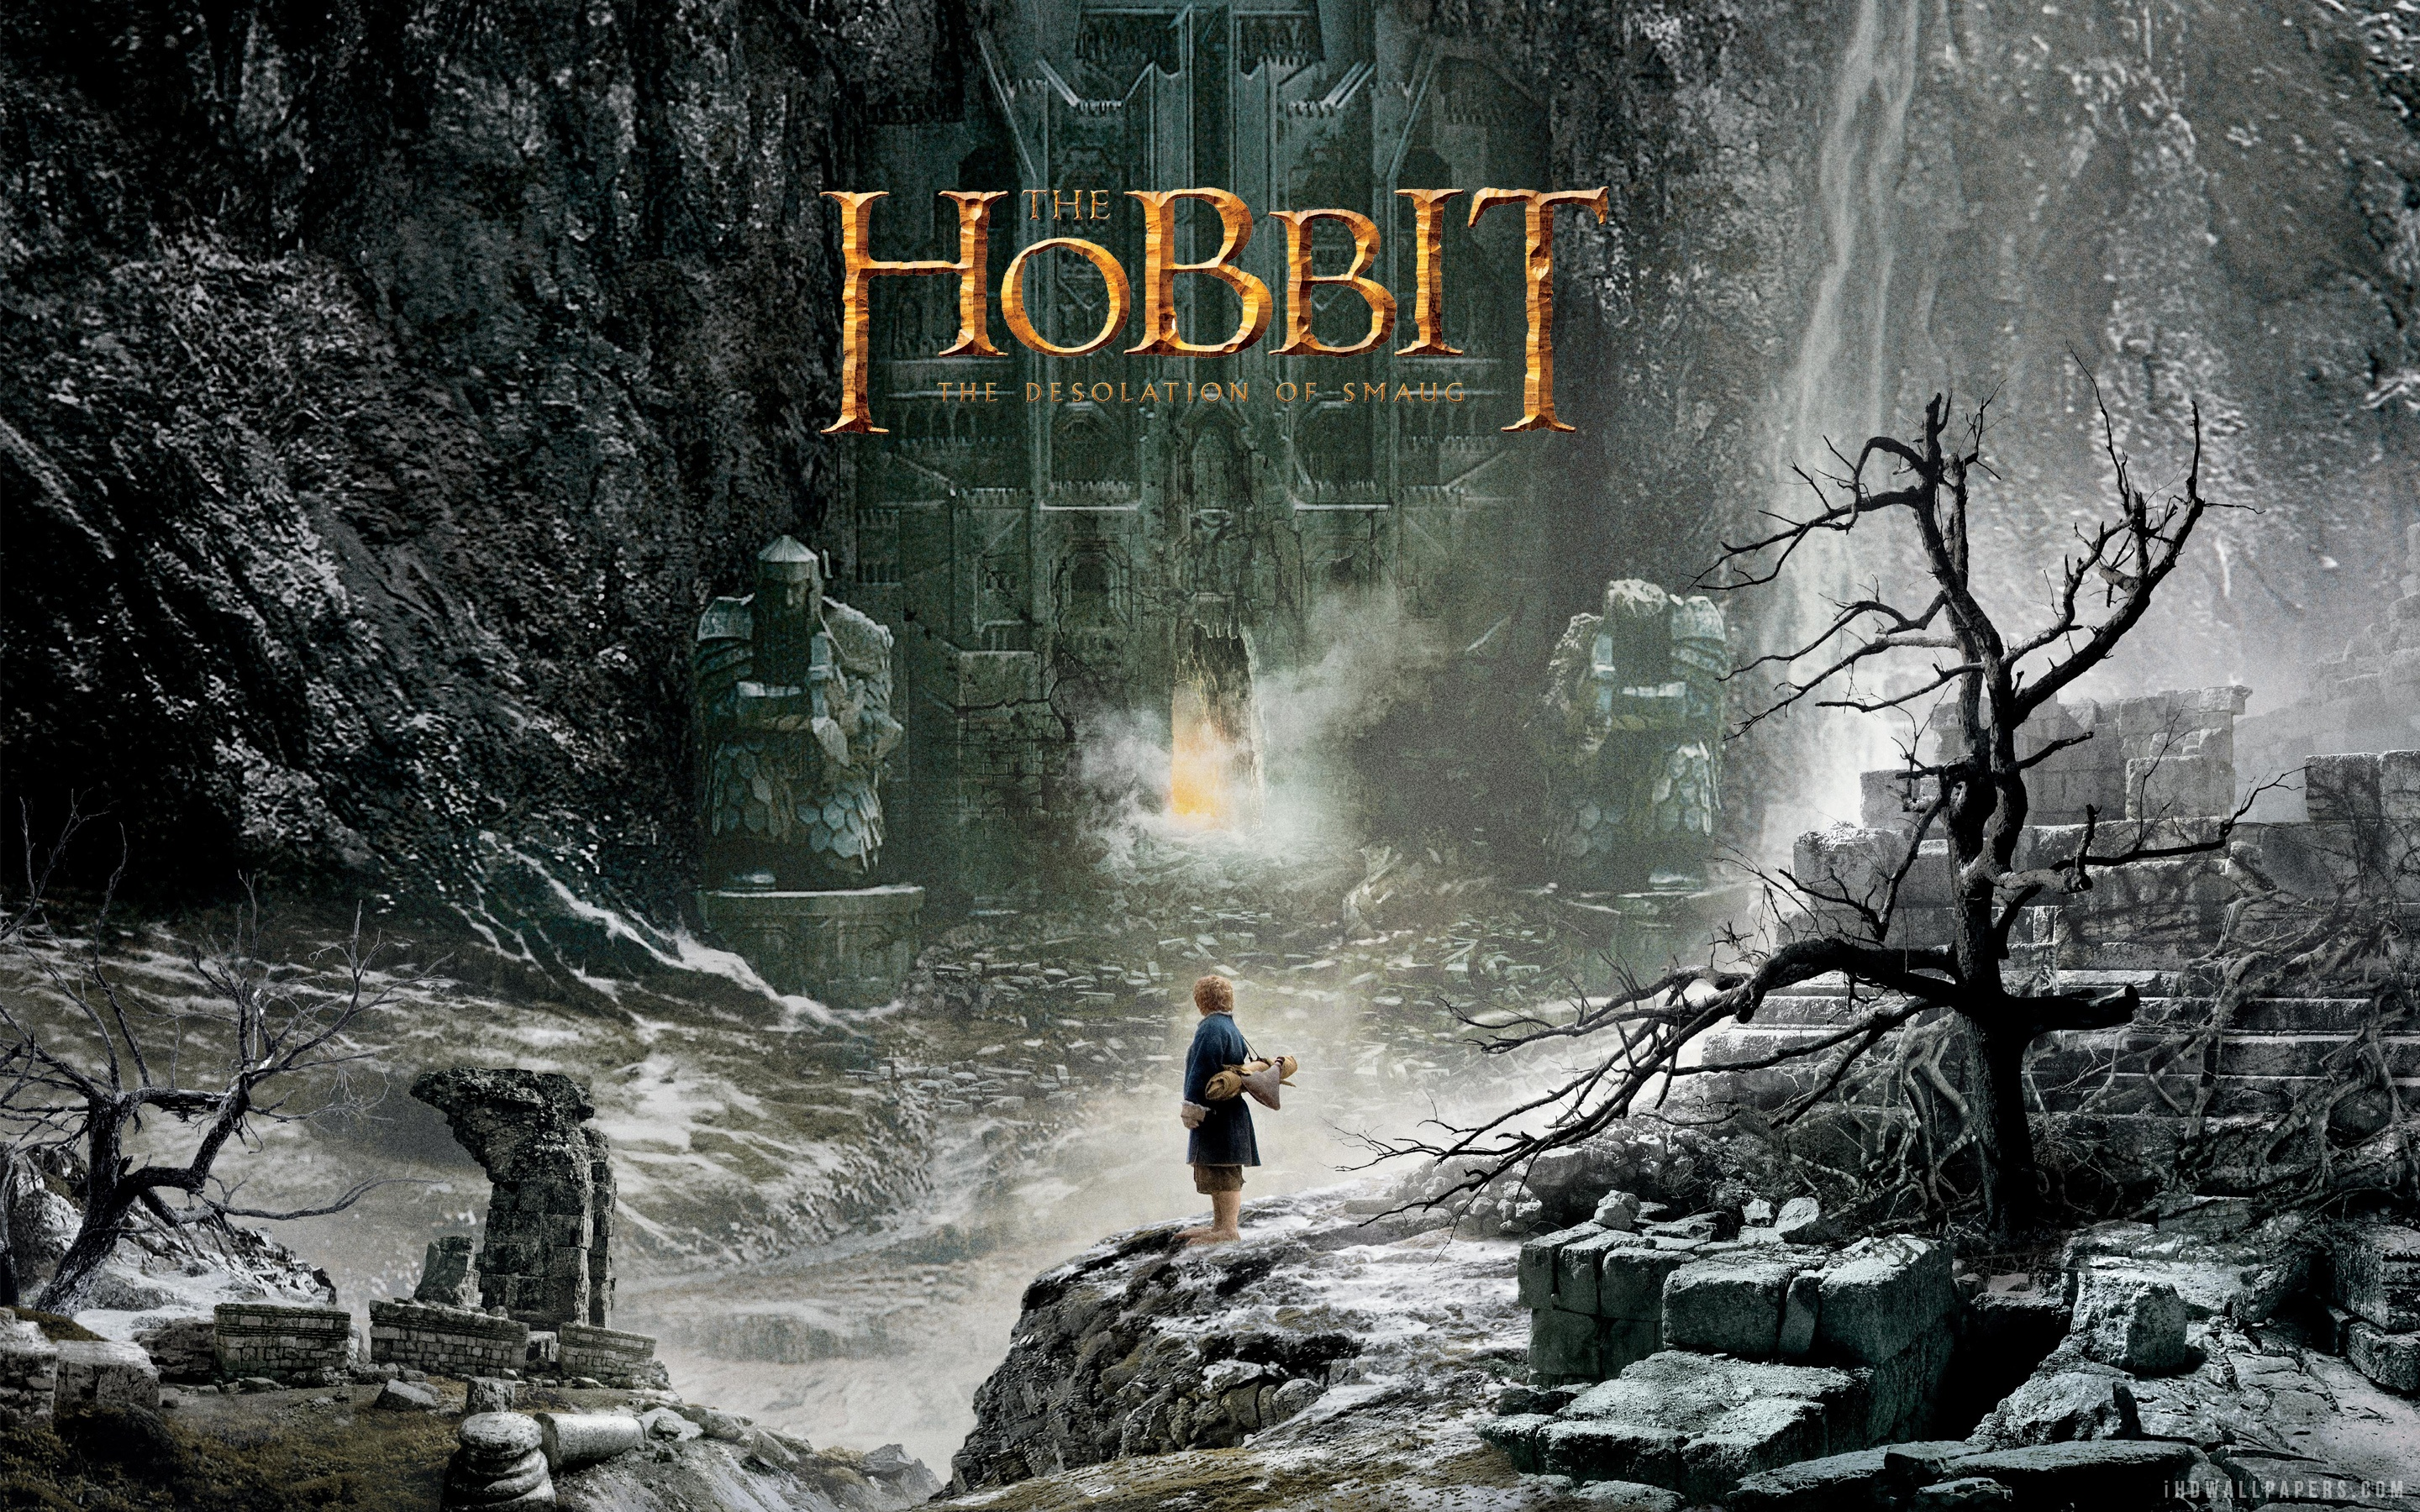 http://cdn.fansided.com/wp-content/blogs.dir/229/files/2013/10/The-Hobbit-Desolation-of-Smaug-Poster.jpg